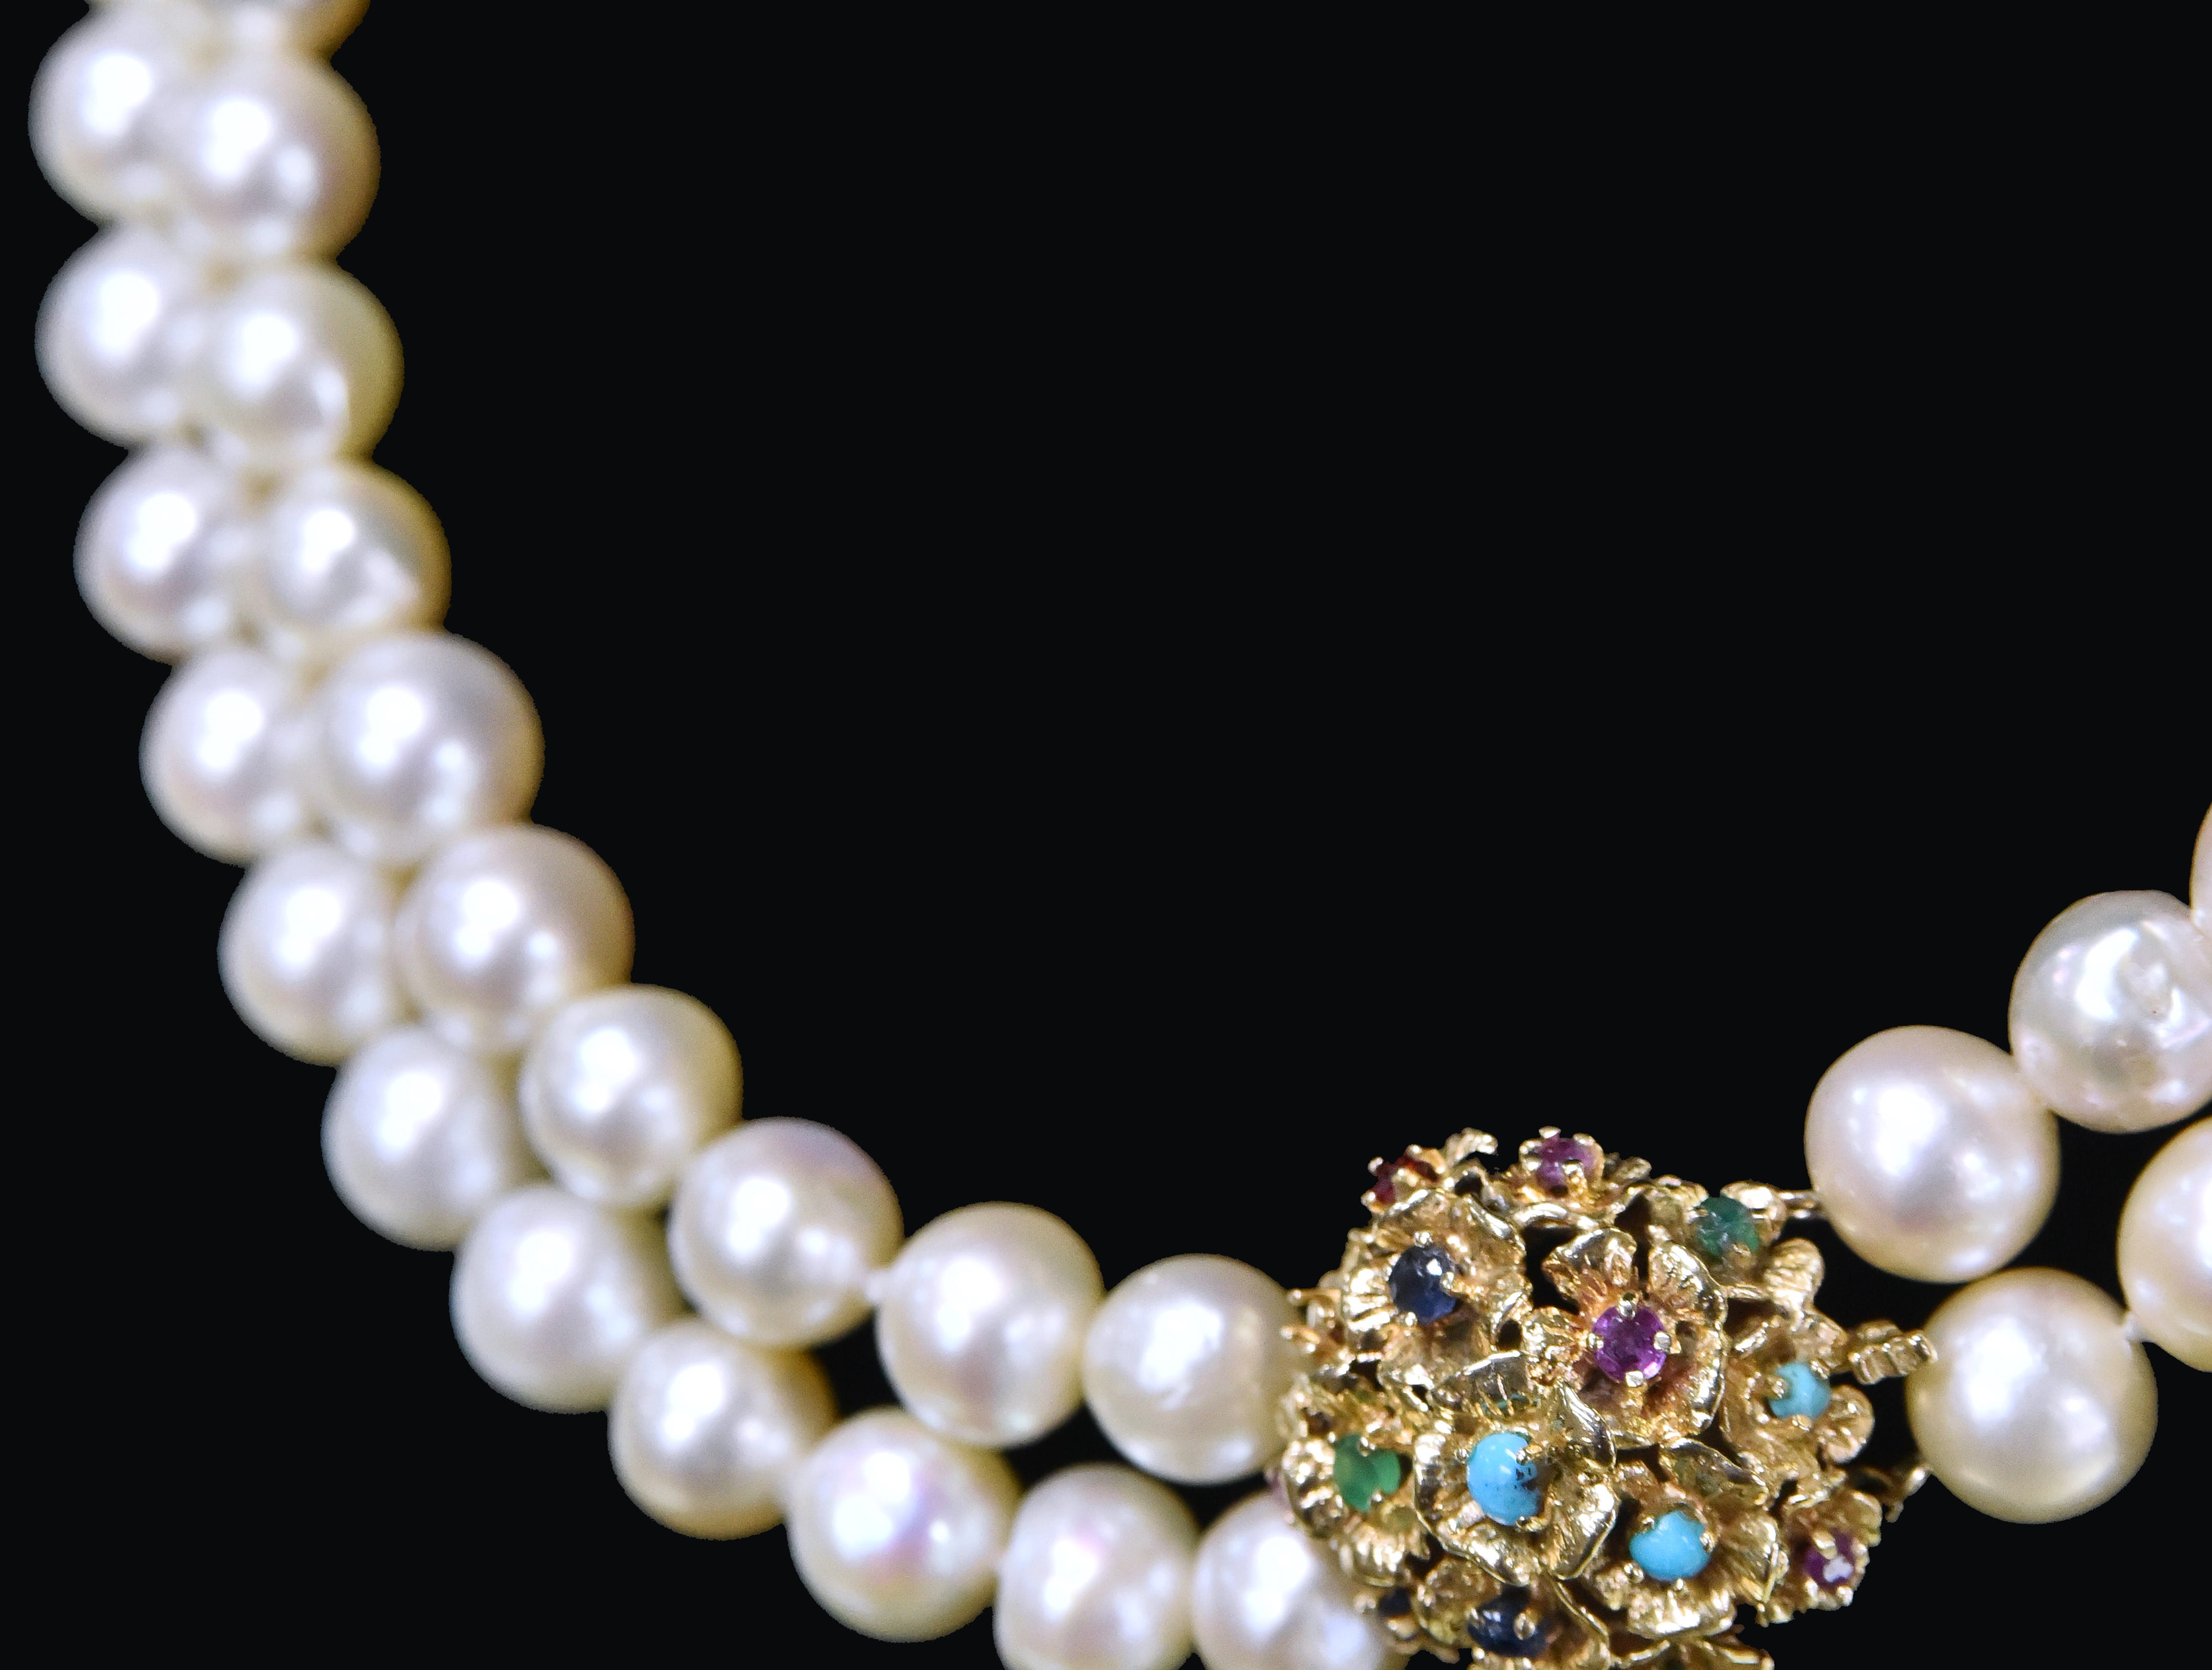 An antique cultured pearl necklace with a 14k decorative clasp with sapphire, emerald, ruby and turquoise from Julie's Jewels and Gifts.